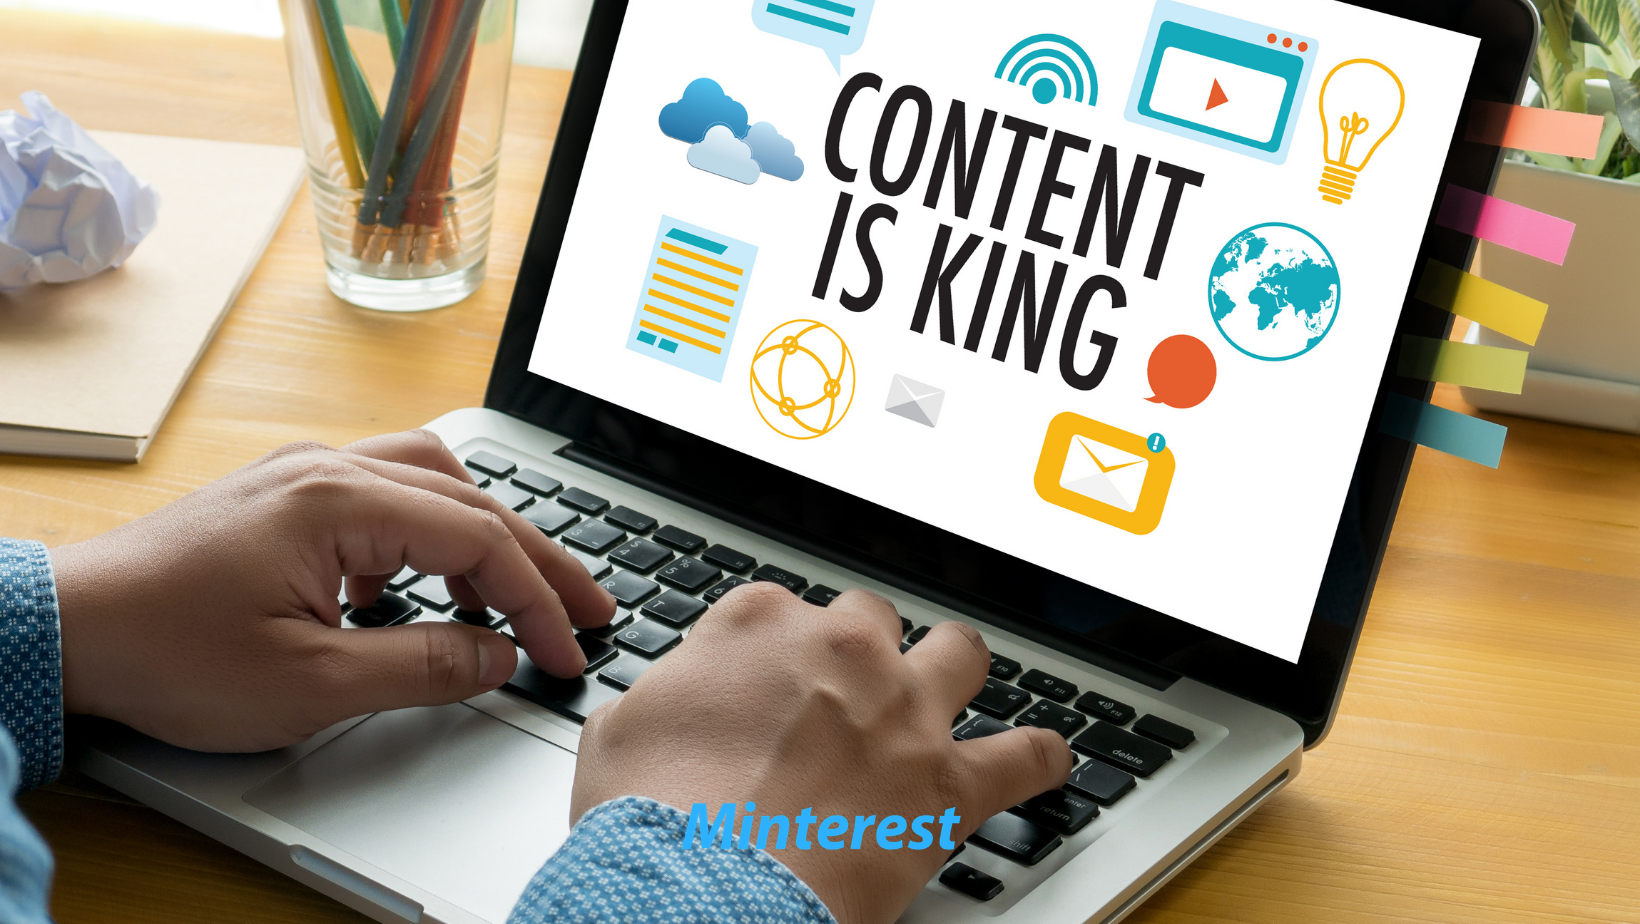 Why Content Curation? Plus 13 Content Curation Tools